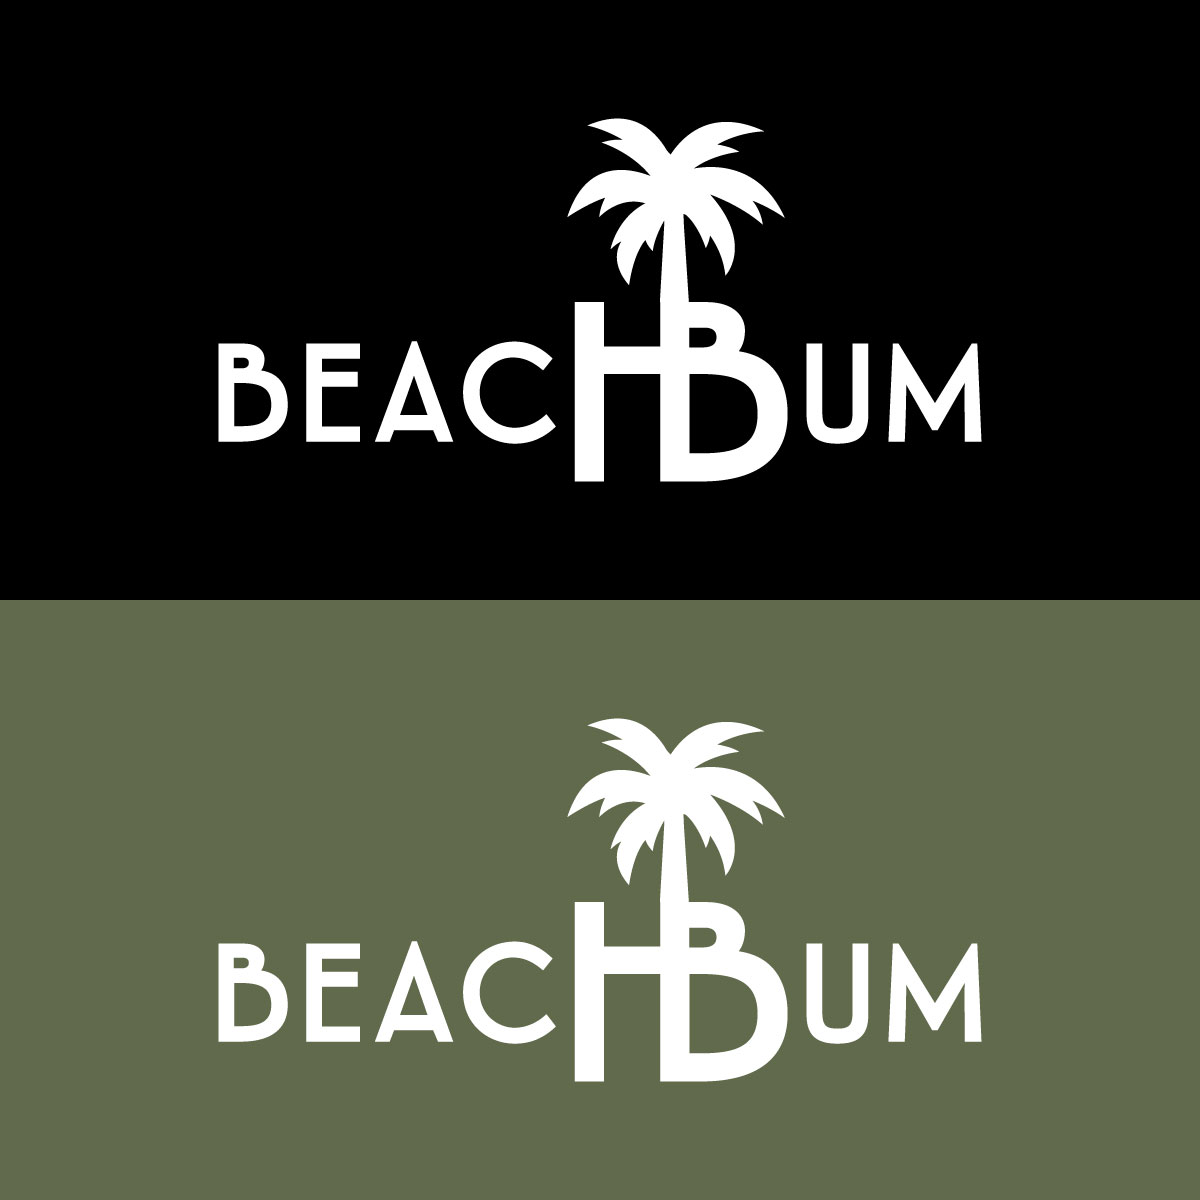 hermosa beacH Bum design by kikicutt